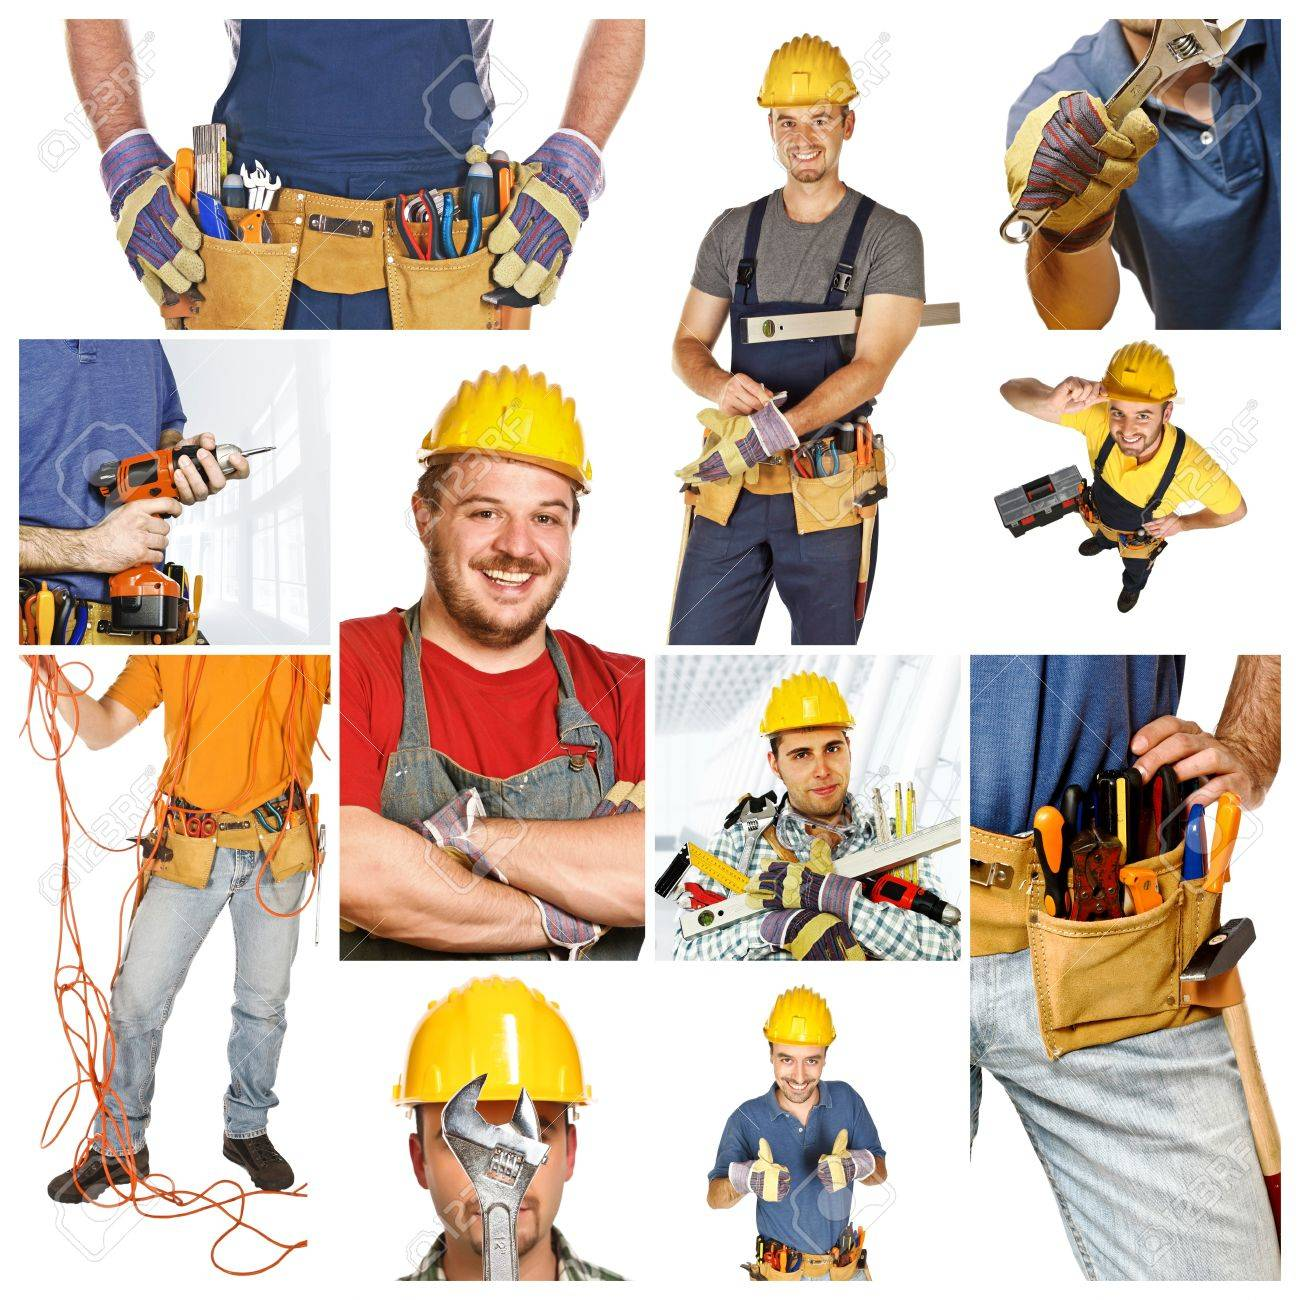 people at work, collage picture of different manual workers Stock Photo - 6880626